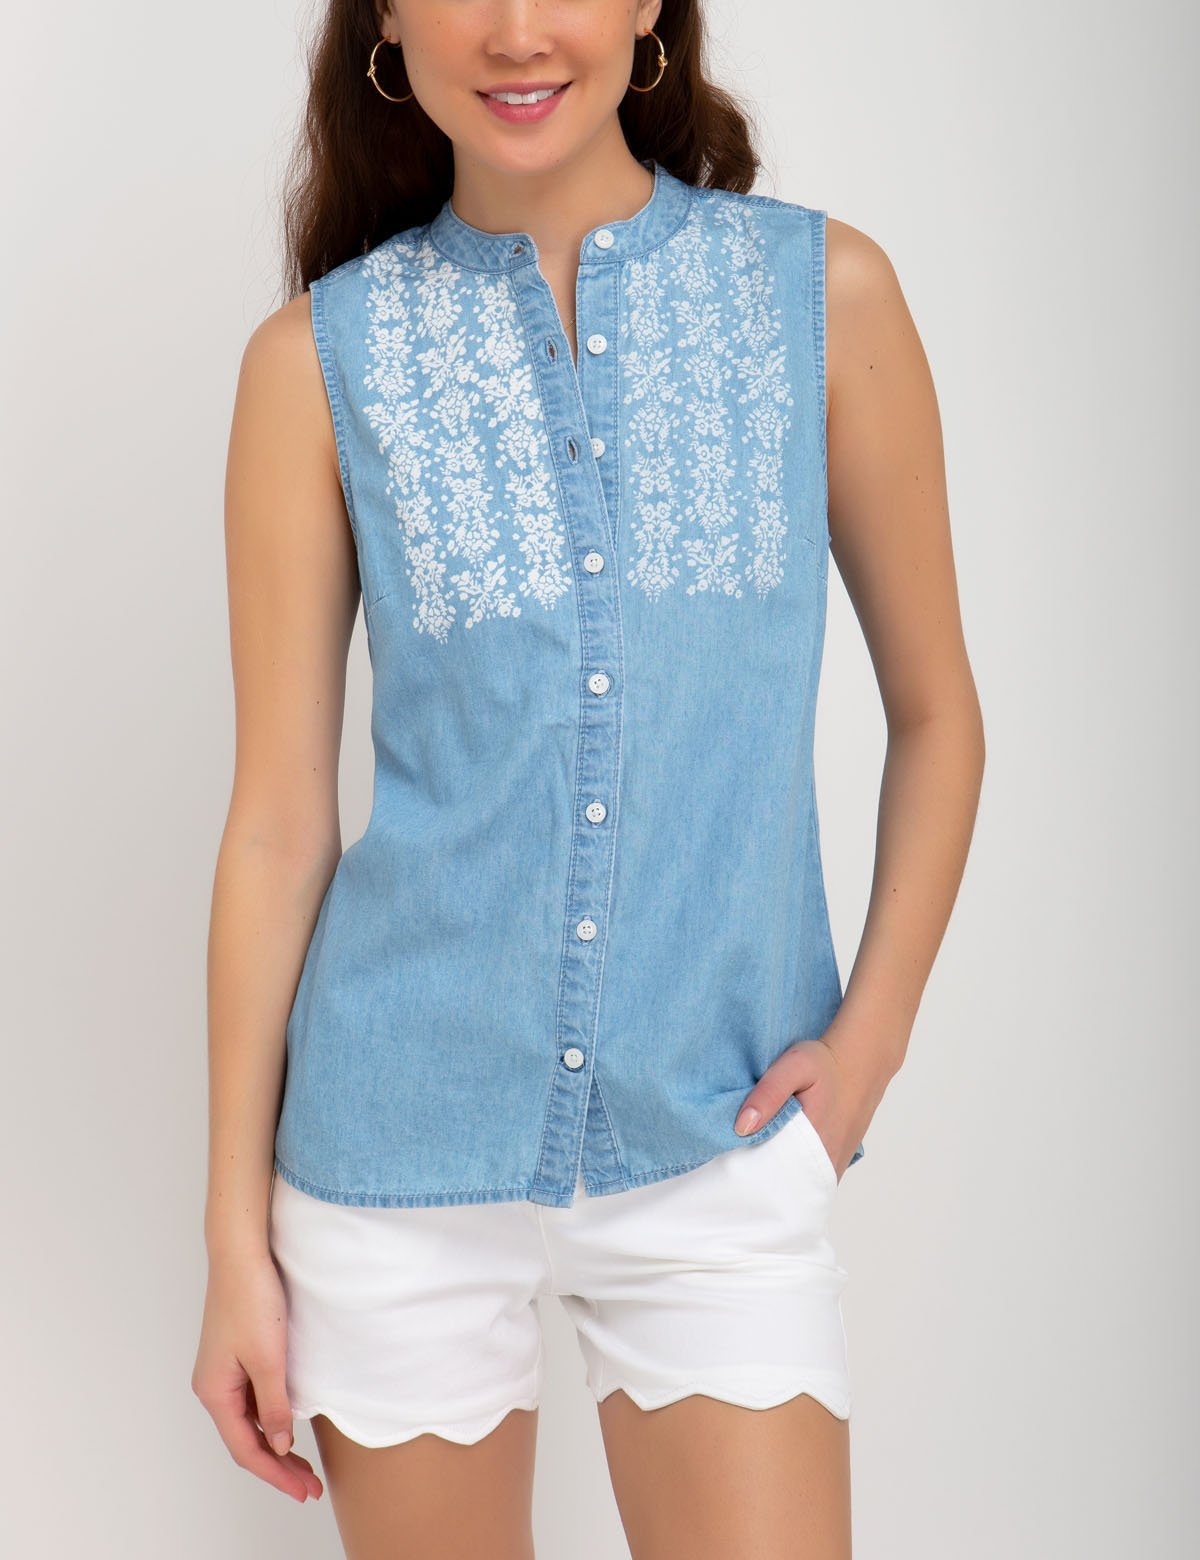 DENIM SLEEVELESS TOP - U.S. Polo Assn.